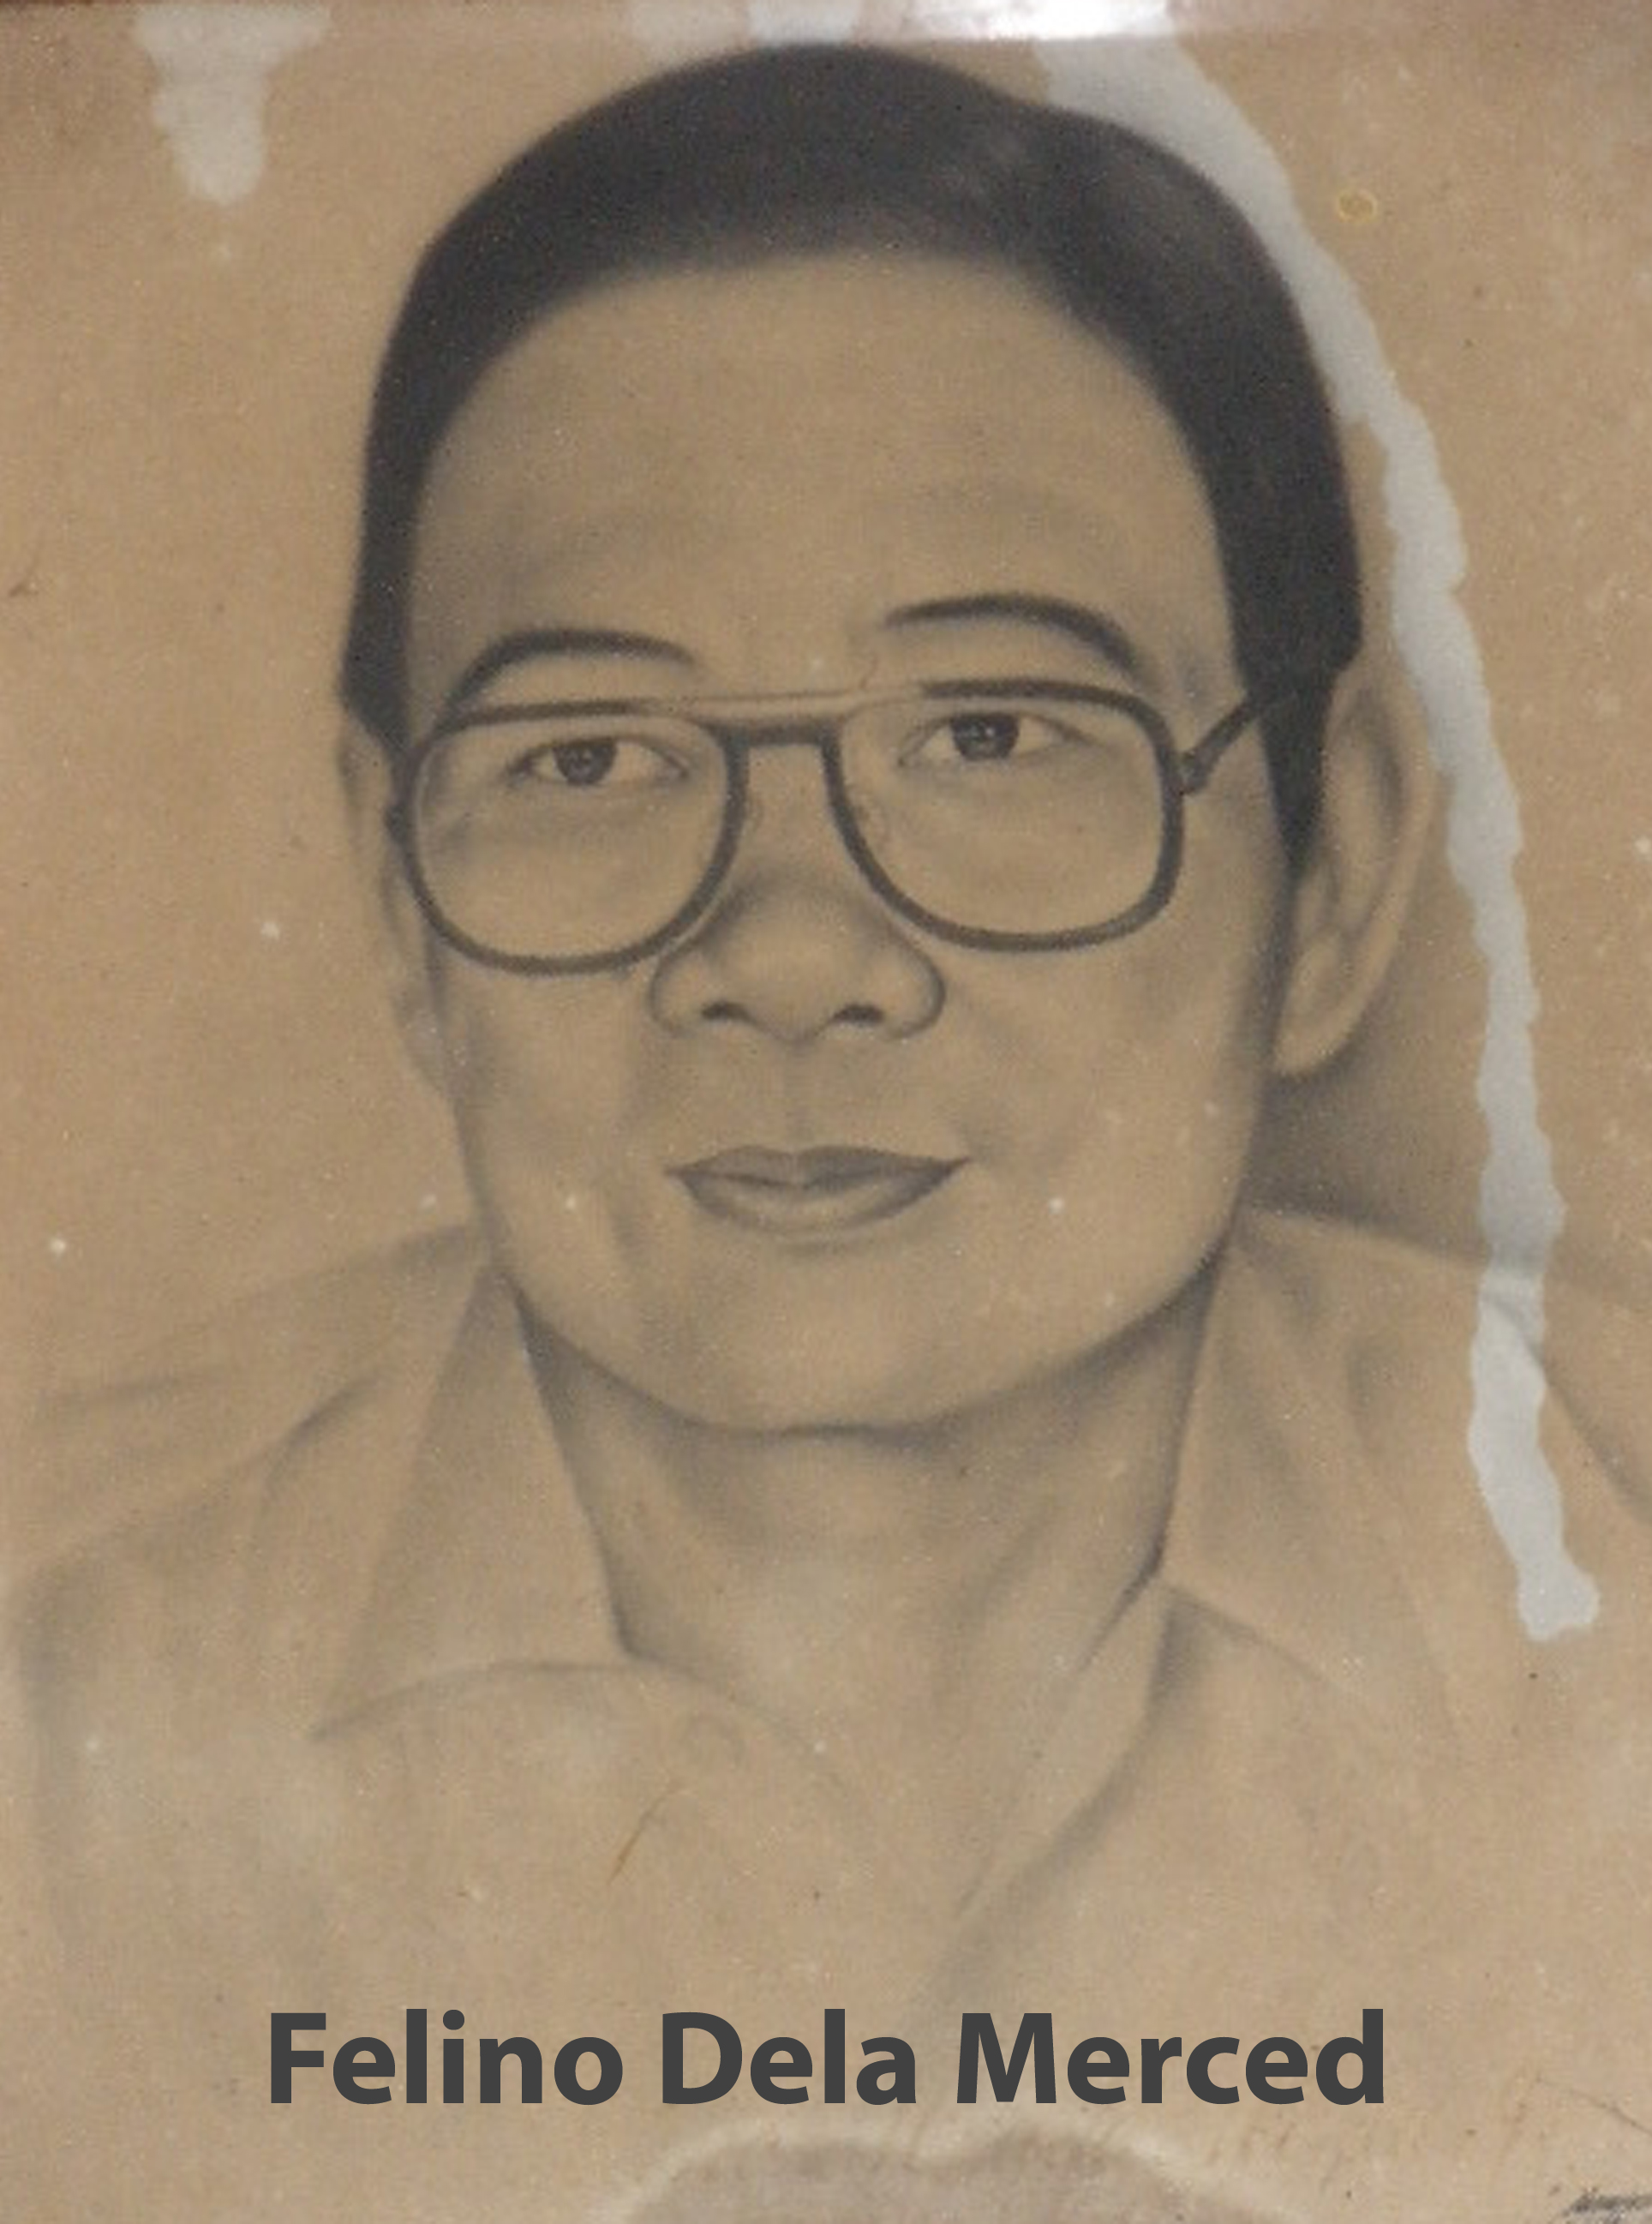 Mayor Felino Dela Merced